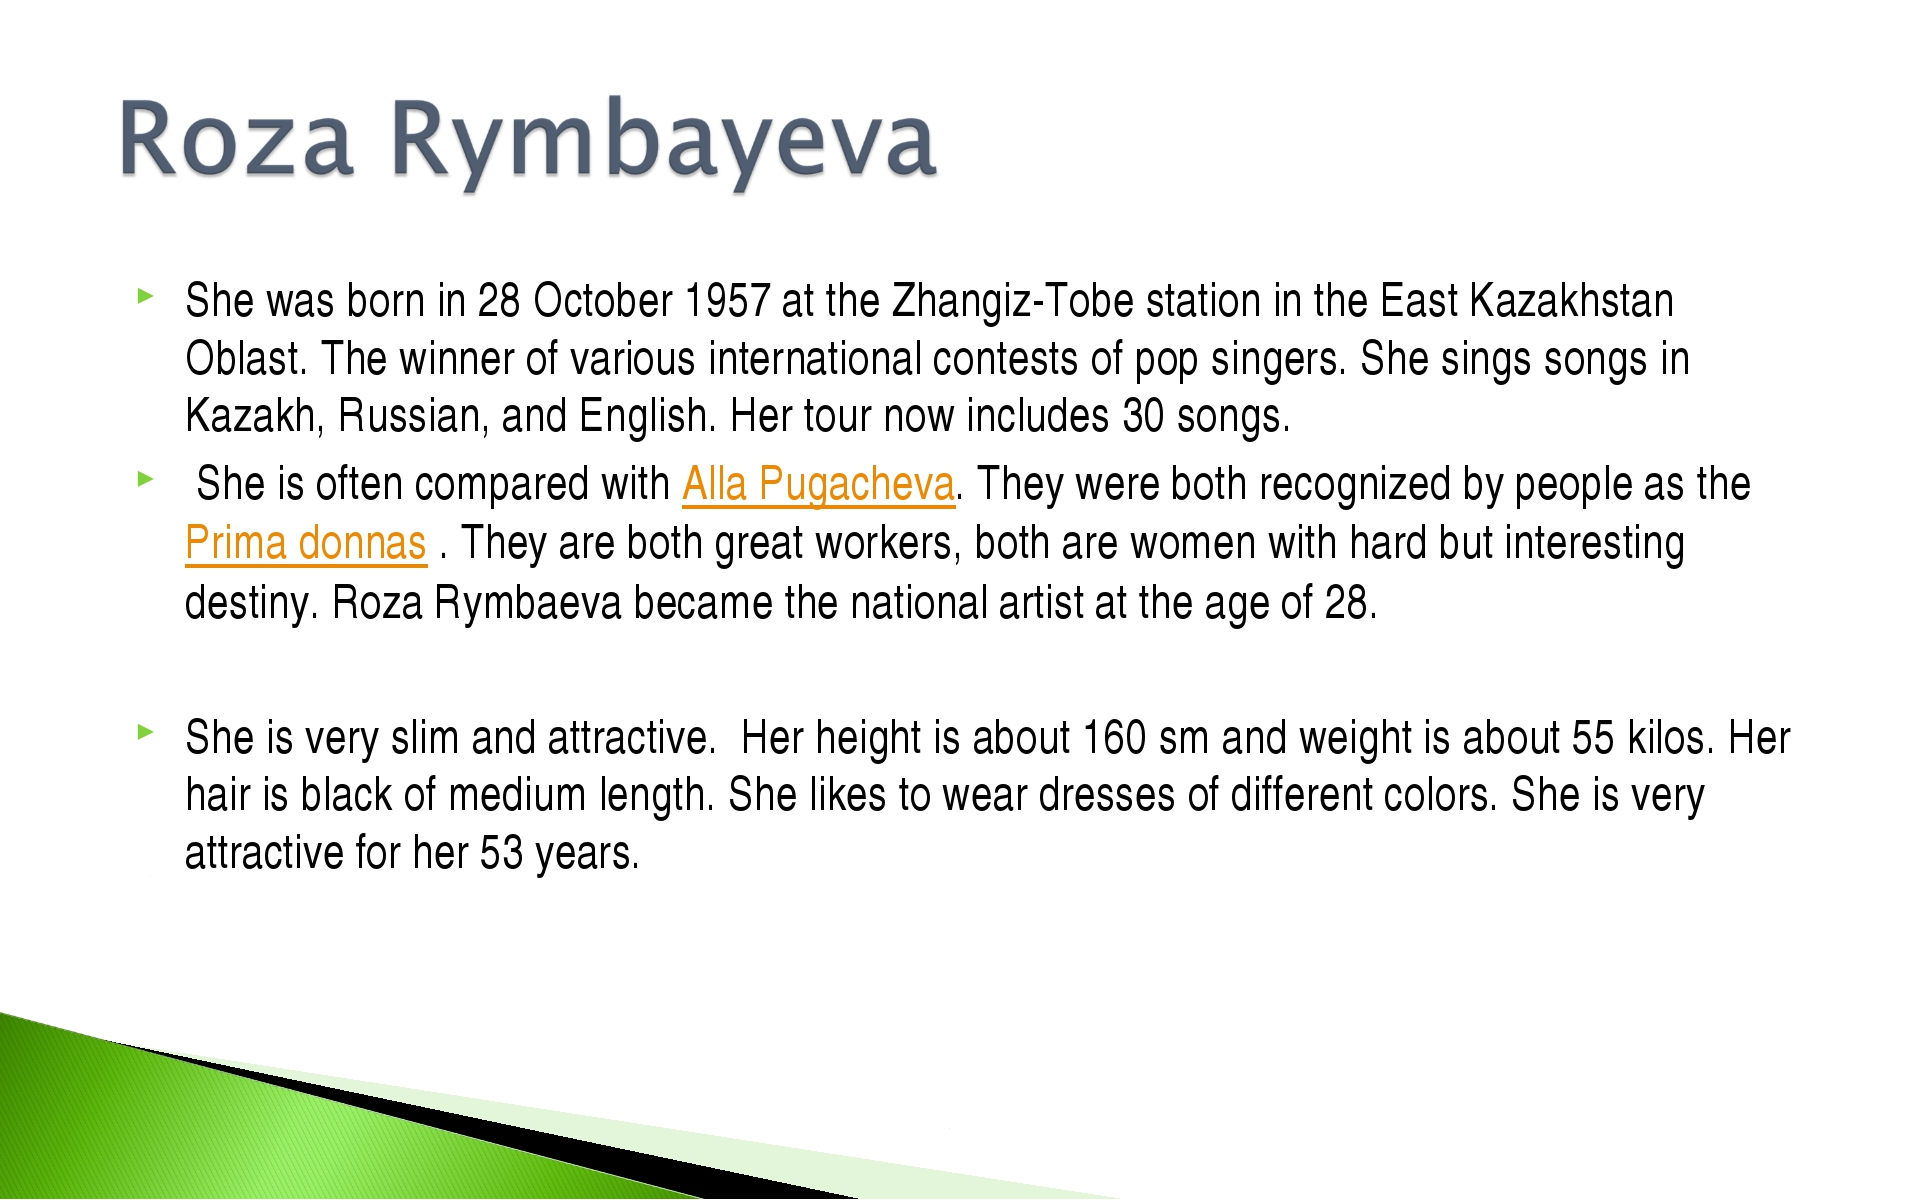 She was born in 28 October 1957 at the Zhangiz-Tobe station in the East Kazak...